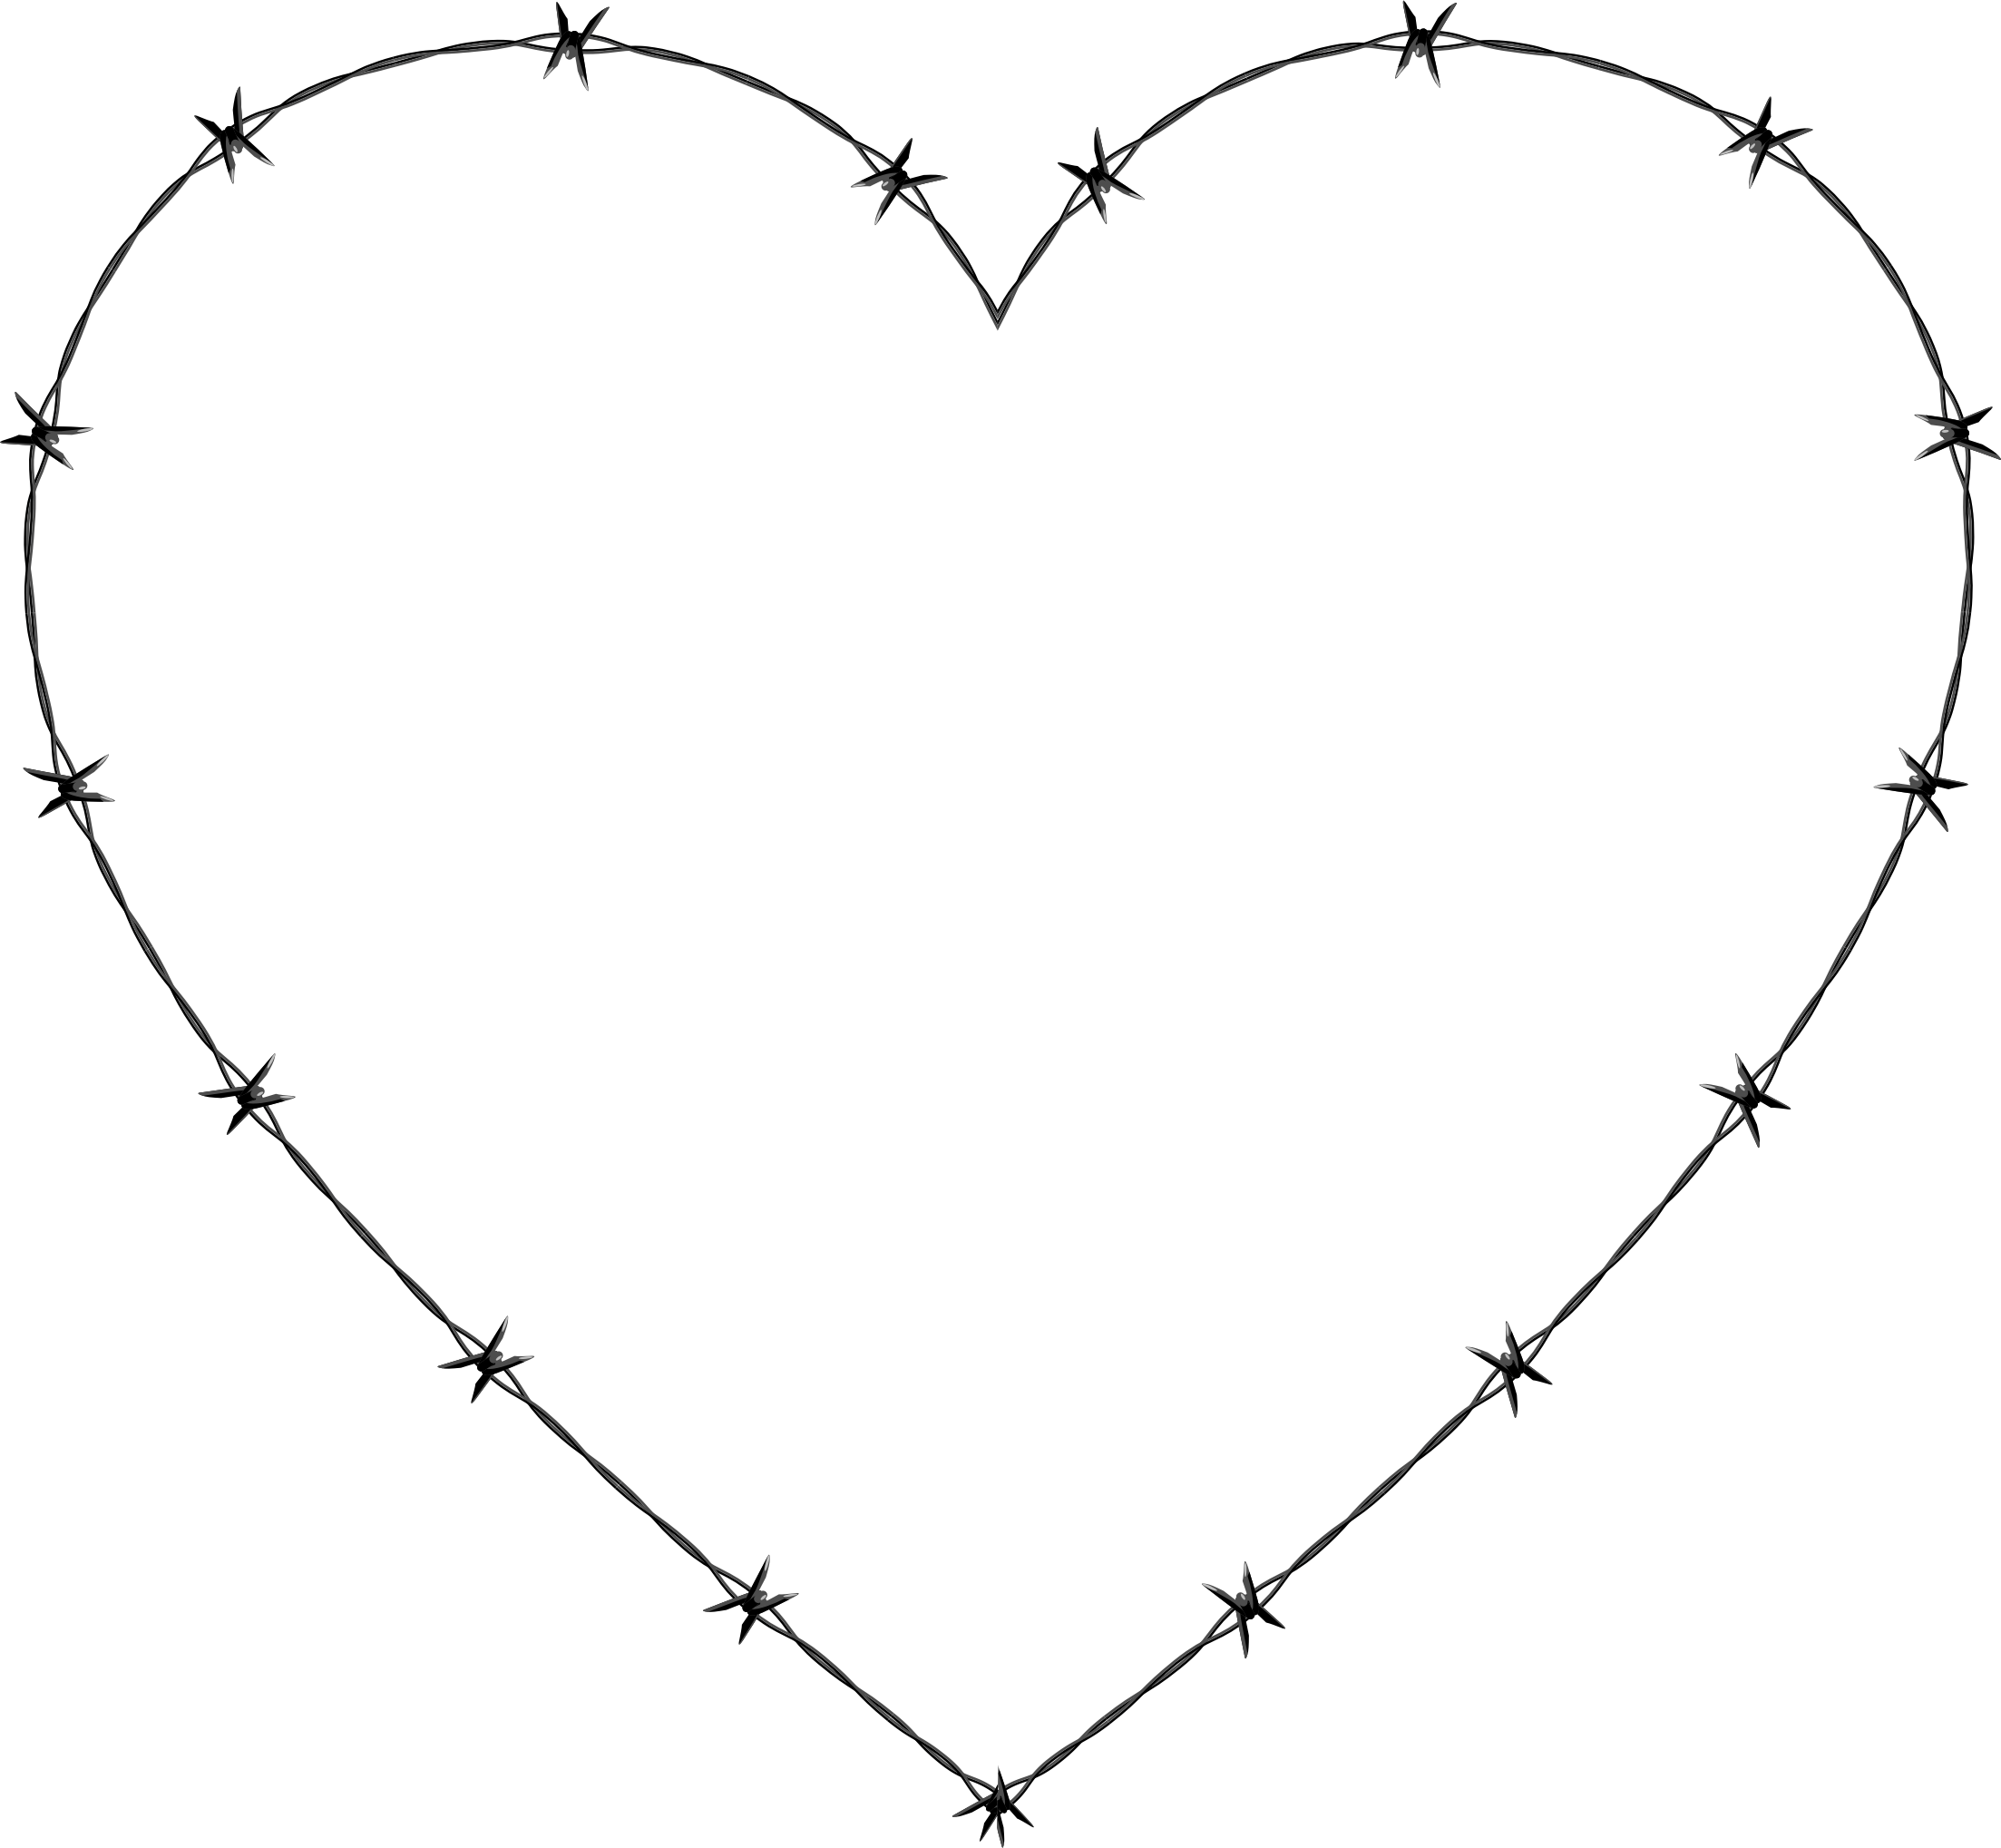 Barbed Wire Heart by GDJ